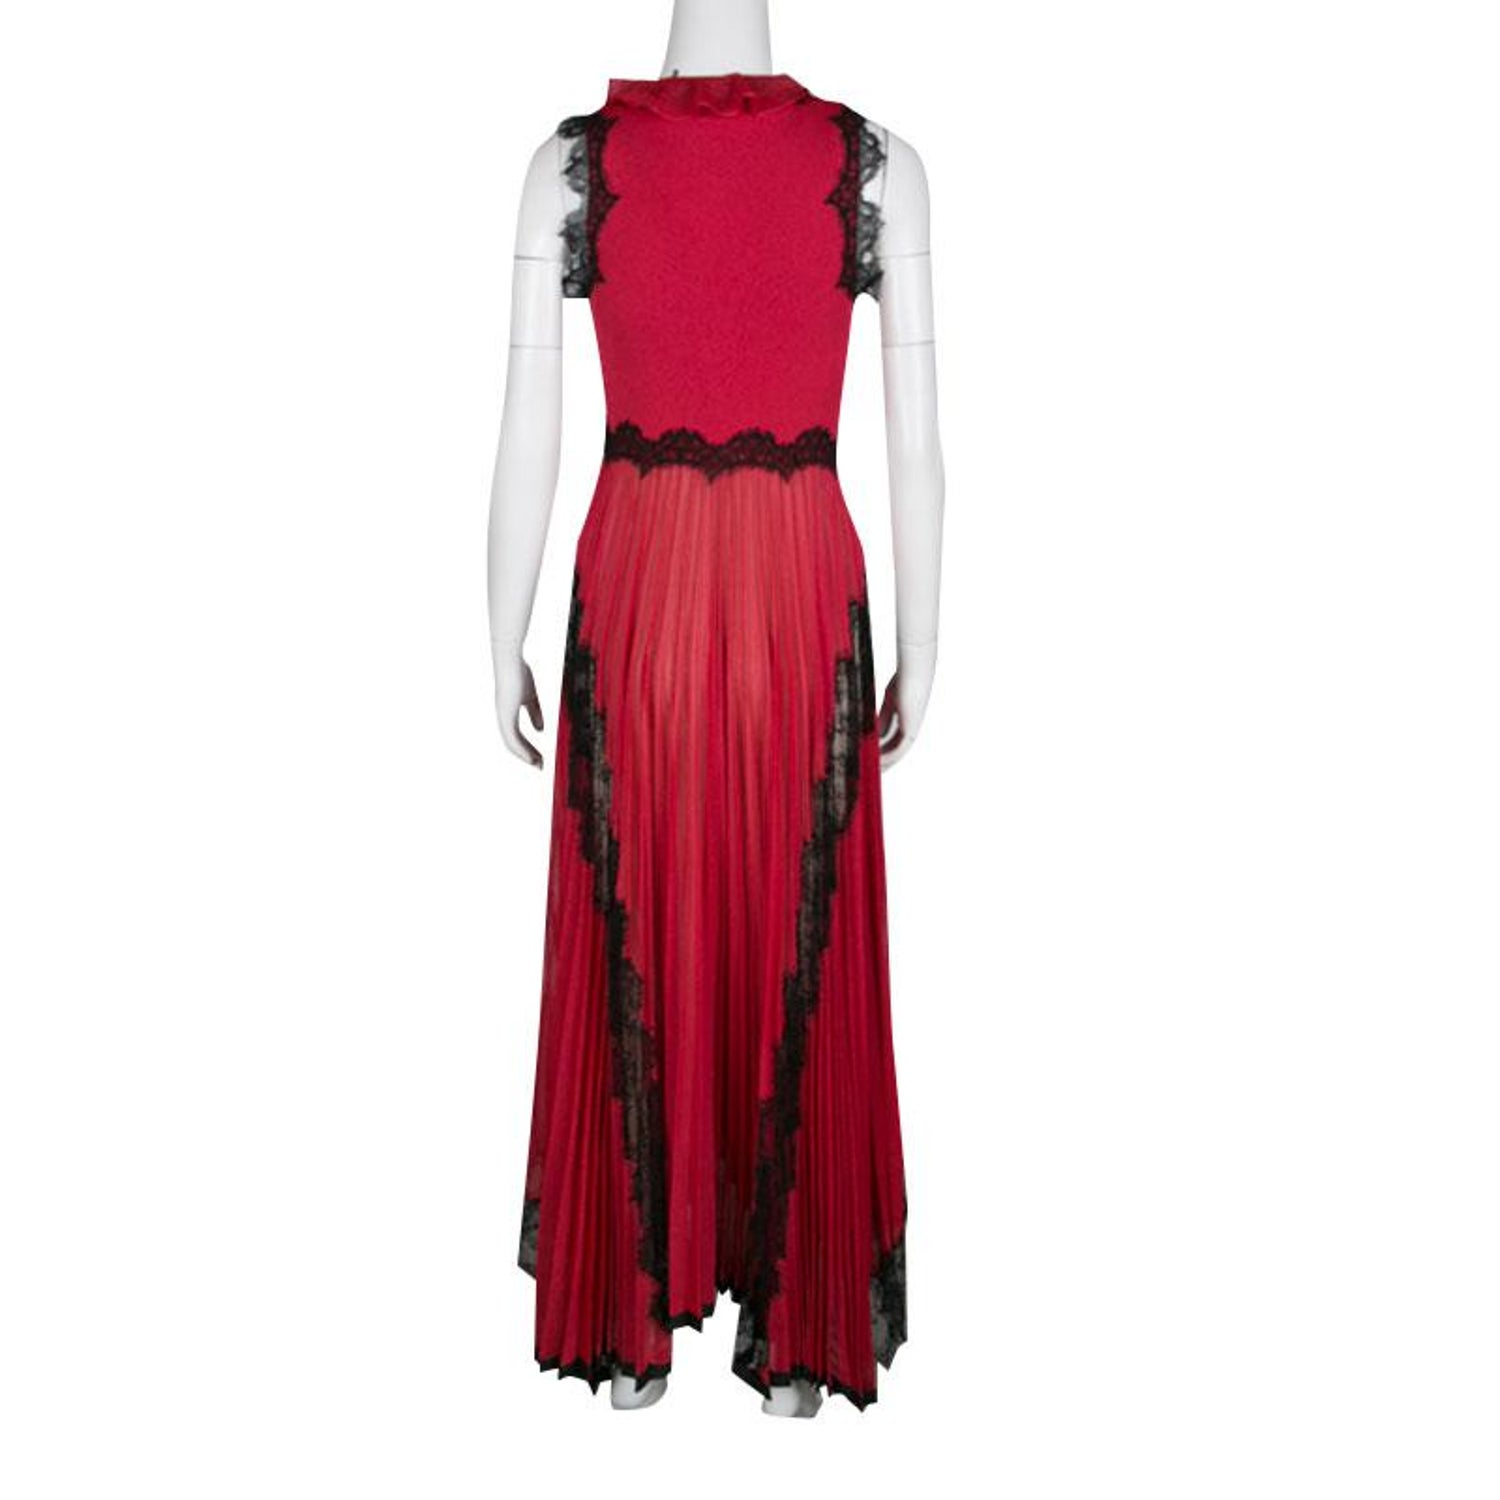 314a5634d31 Gucci Red Lurex Knit Contrast Lace Ruffle and Pleat Detail Sleeveless Gown  S at 1stdibs